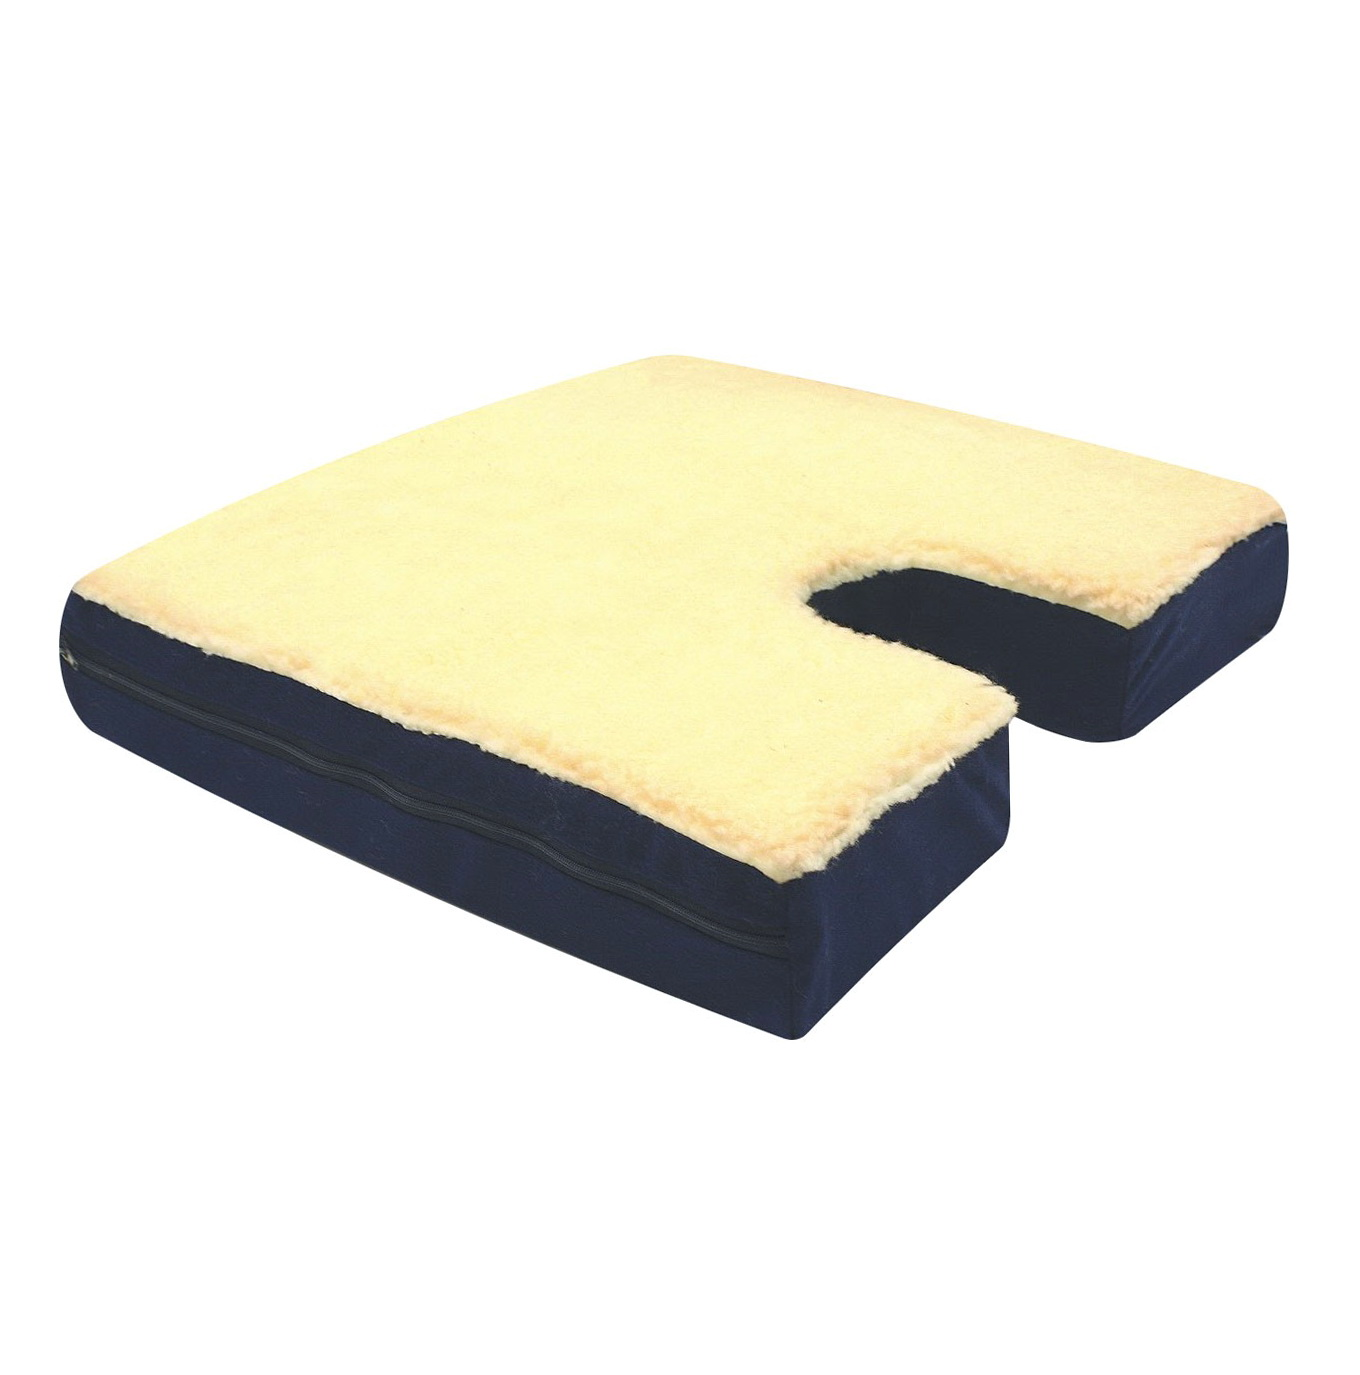 Wedge Seat Cushion Reviews